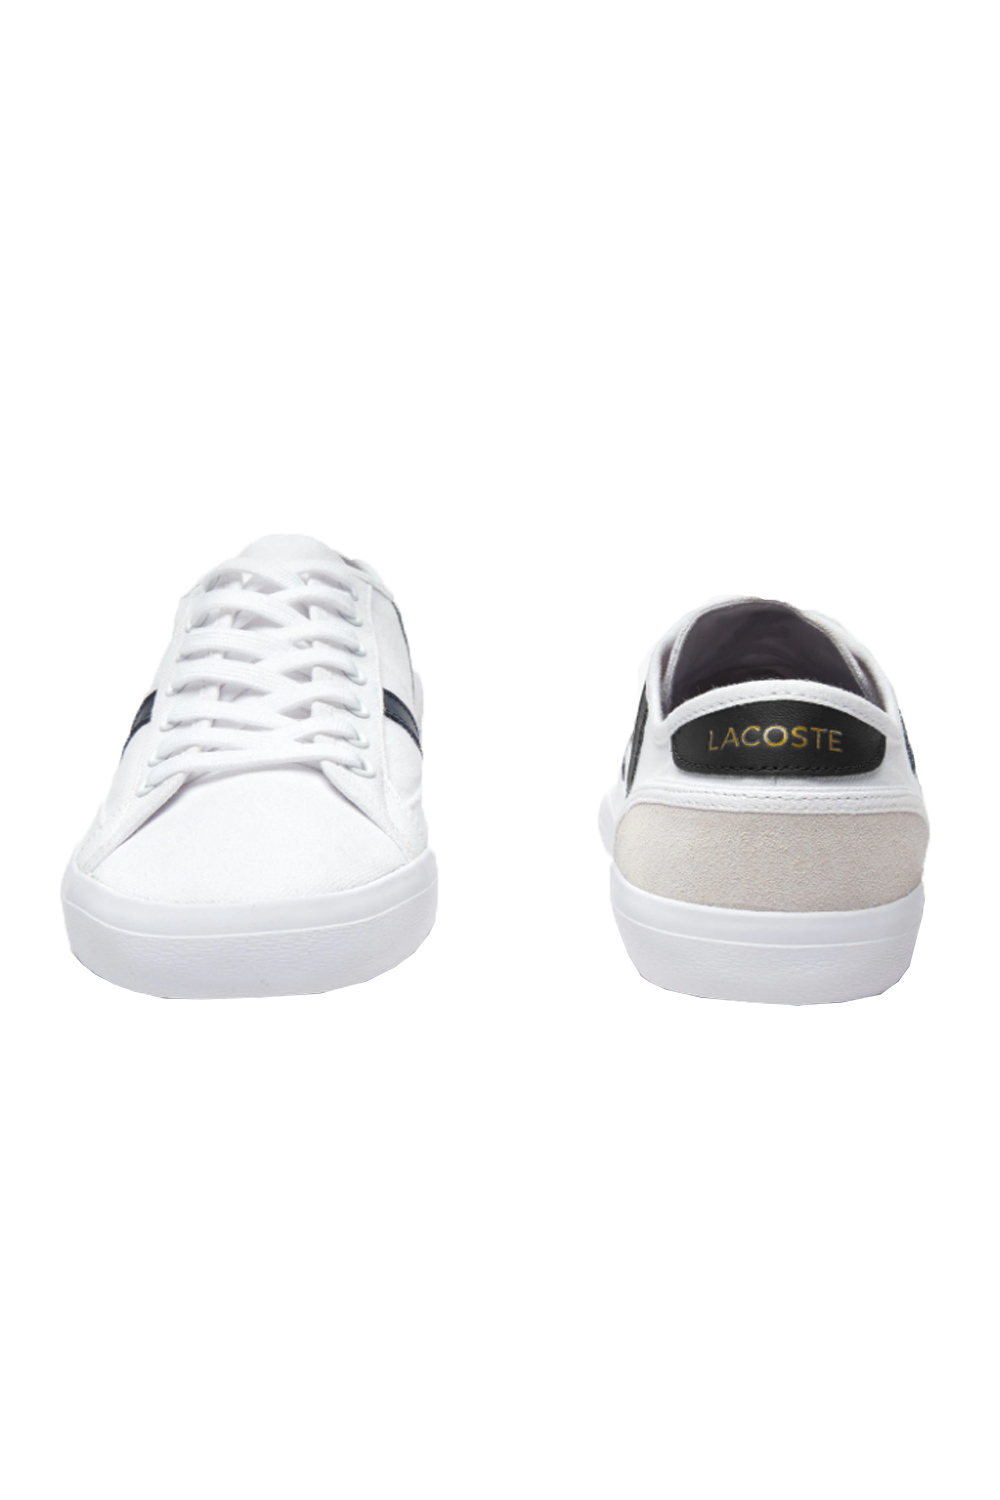 Lacoste-Mens-Sideline-119-Lace-Ups-Leather-Canvas-White-Trainers-Casual-Shoes thumbnail 11